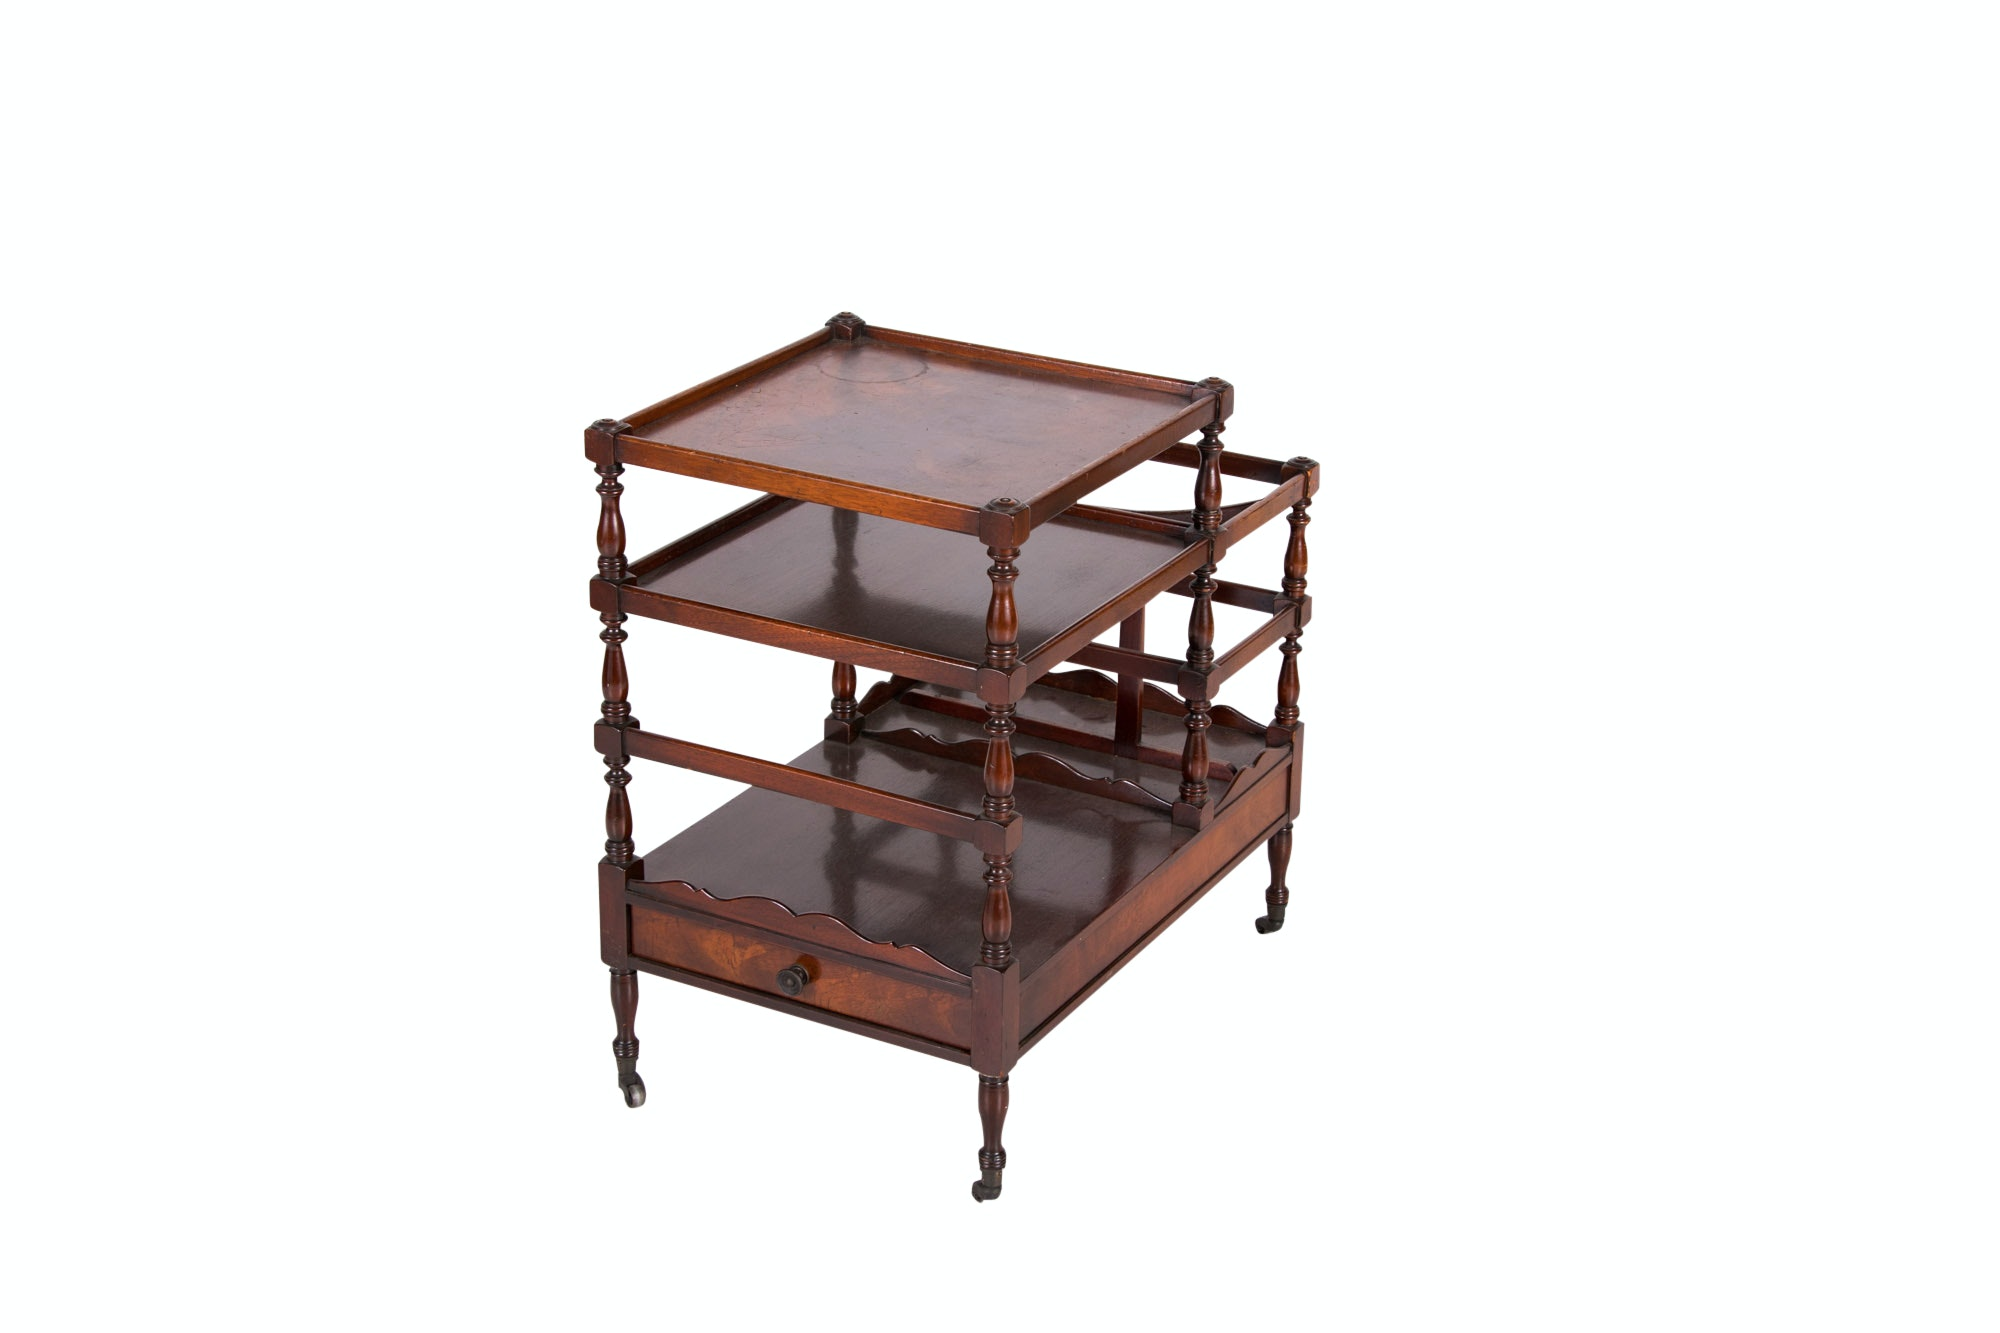 Regency Style Mahogany Canterbury by Beacon Hill Collection, 20th Century